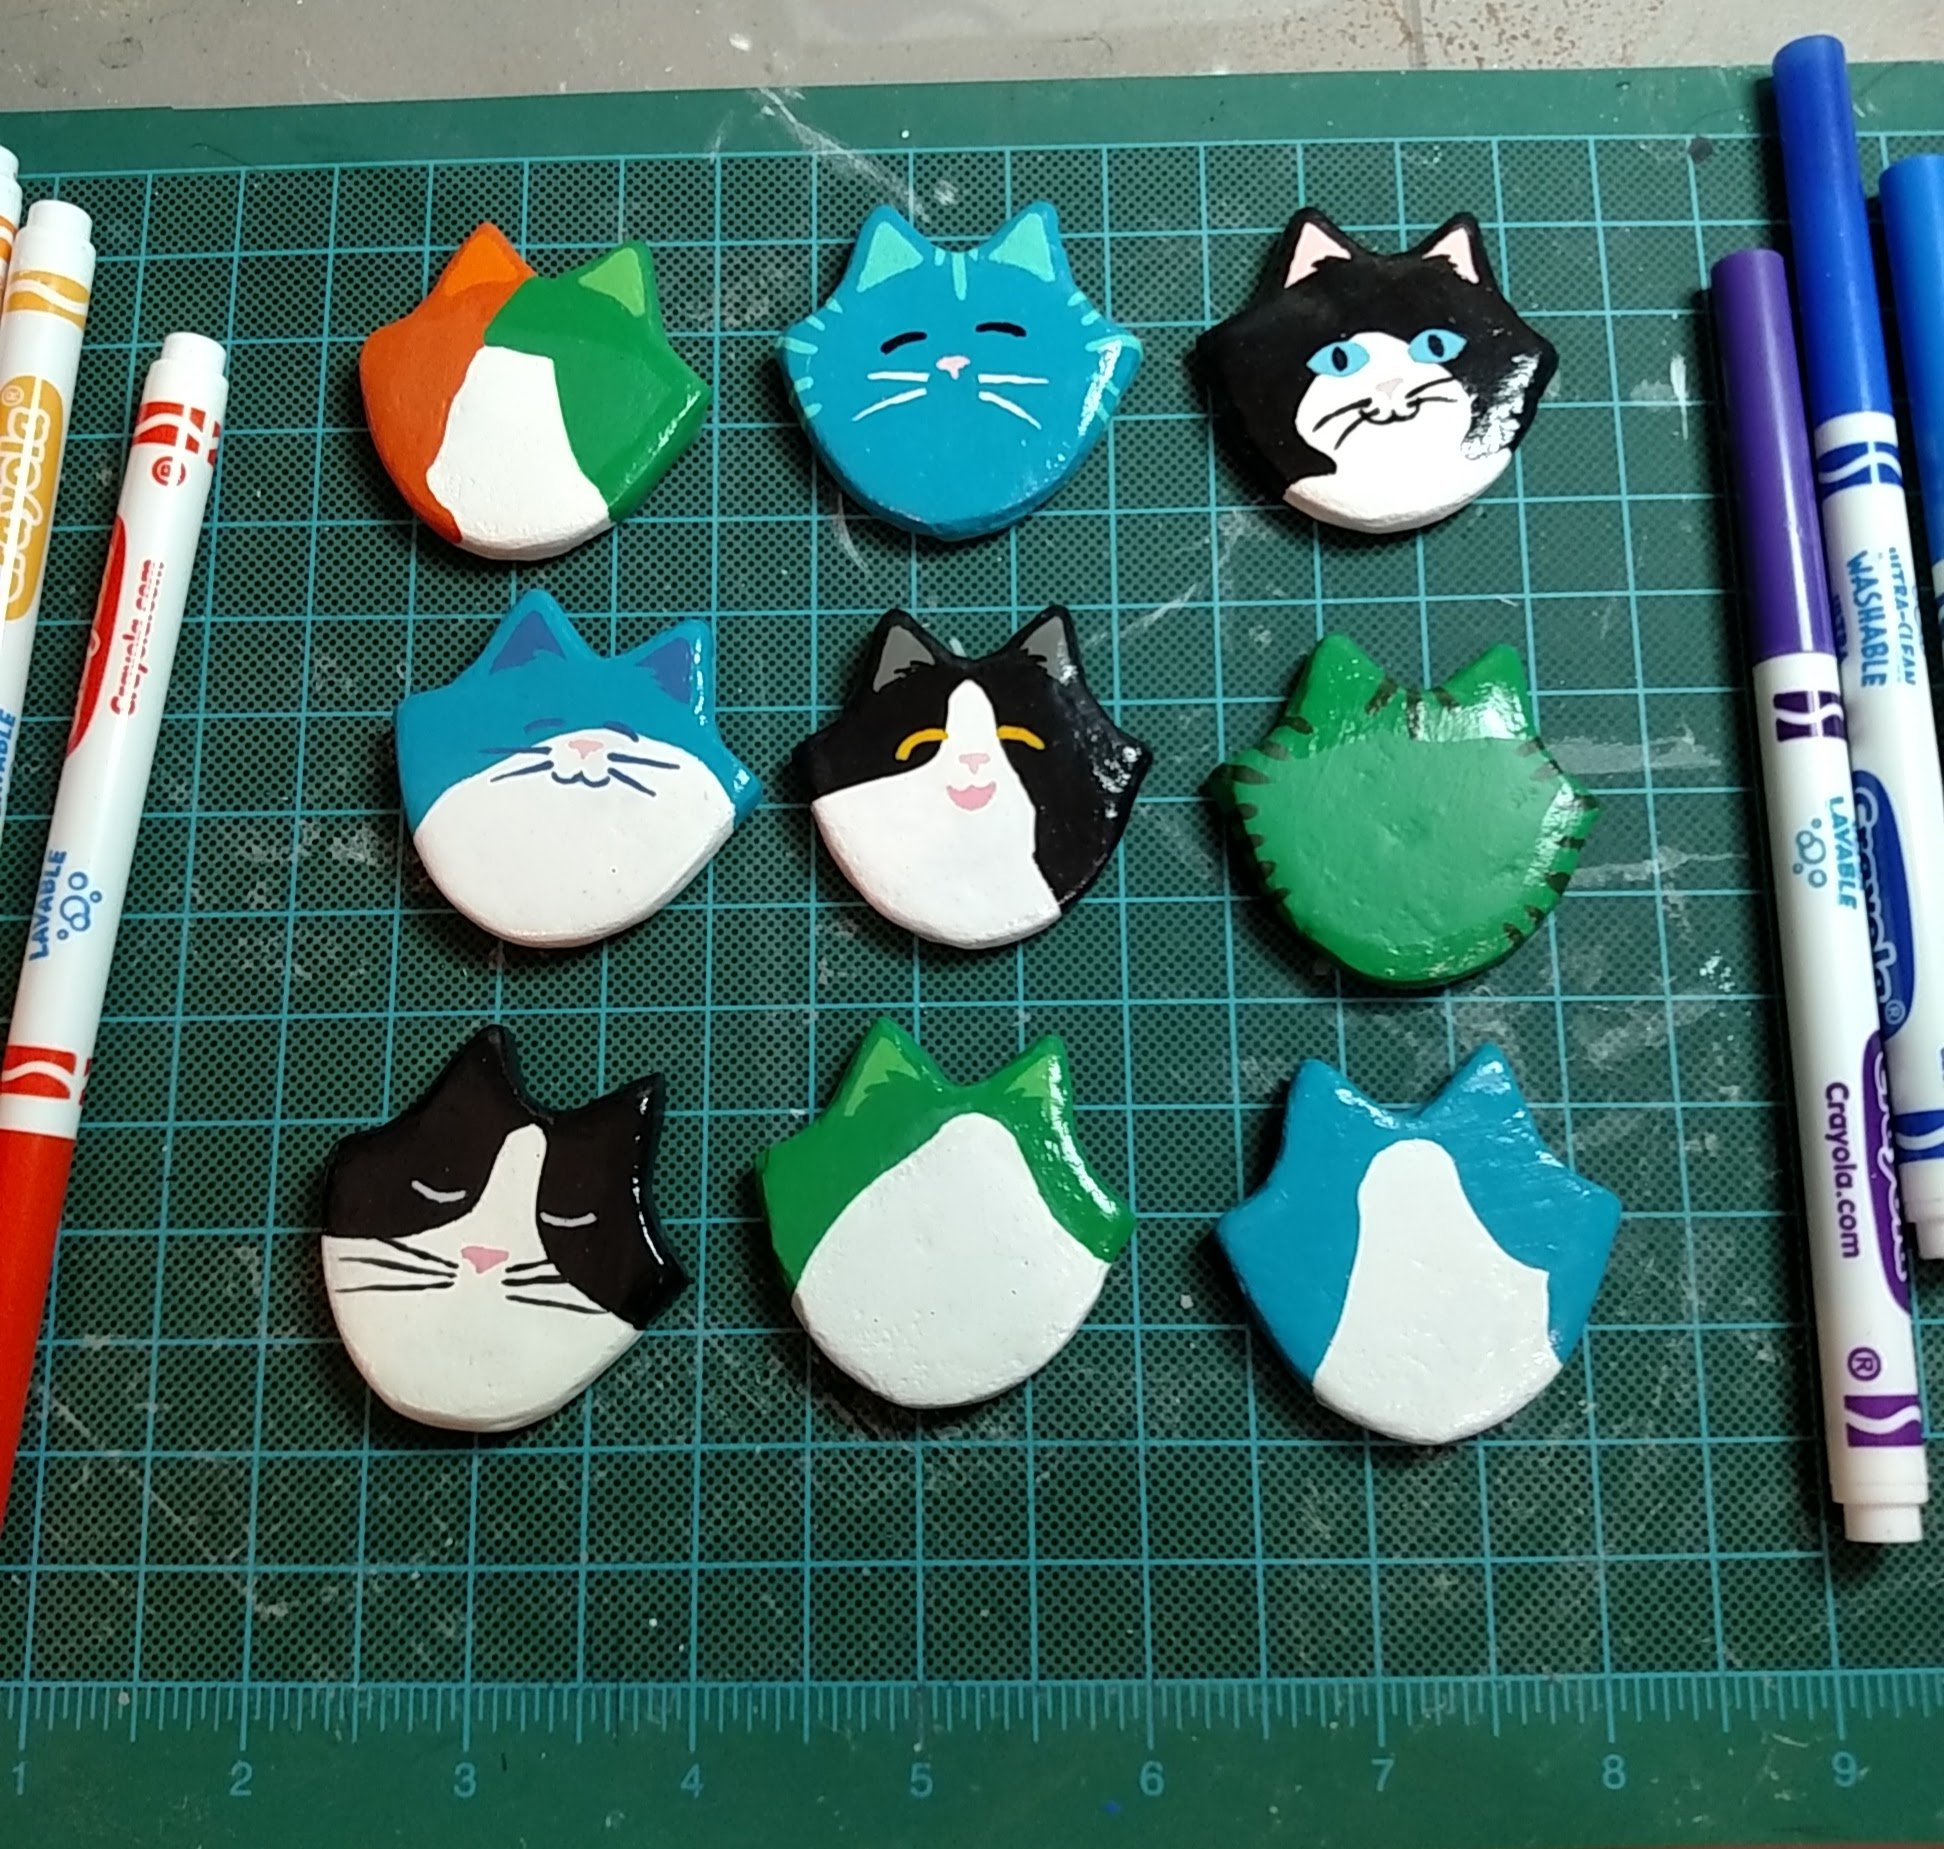 Flat Cat Head Magnets finished and in progress